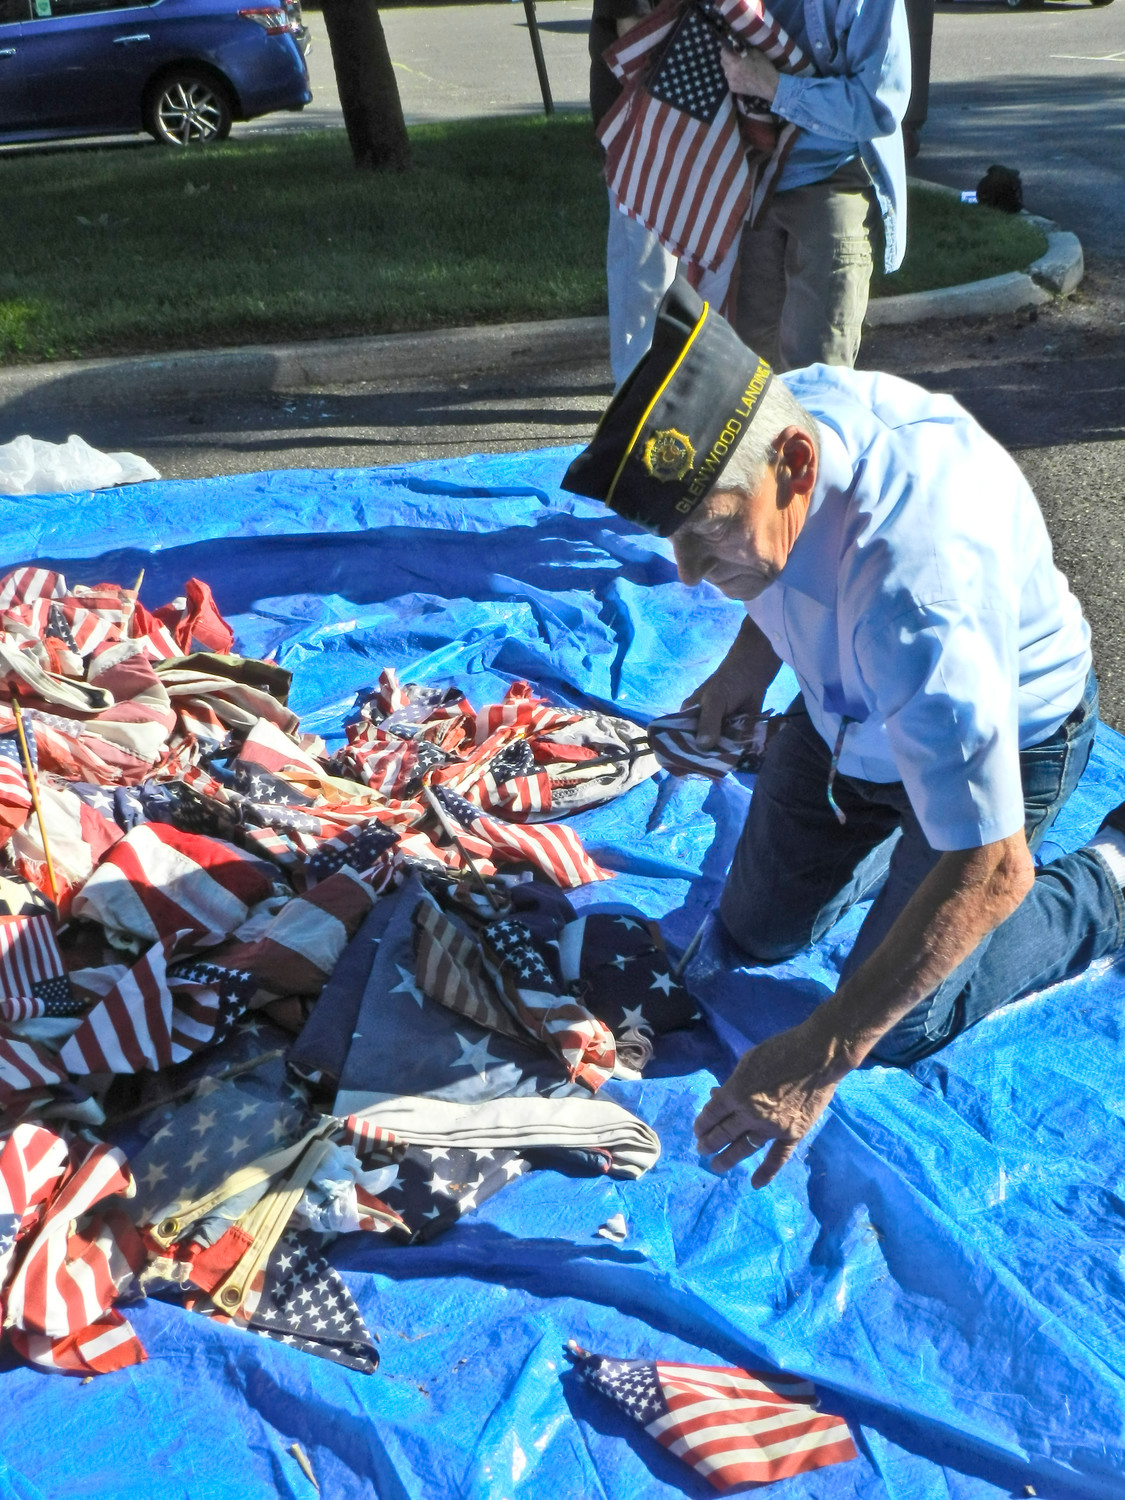 Commander William Laderer rummaged through the pile of flags.